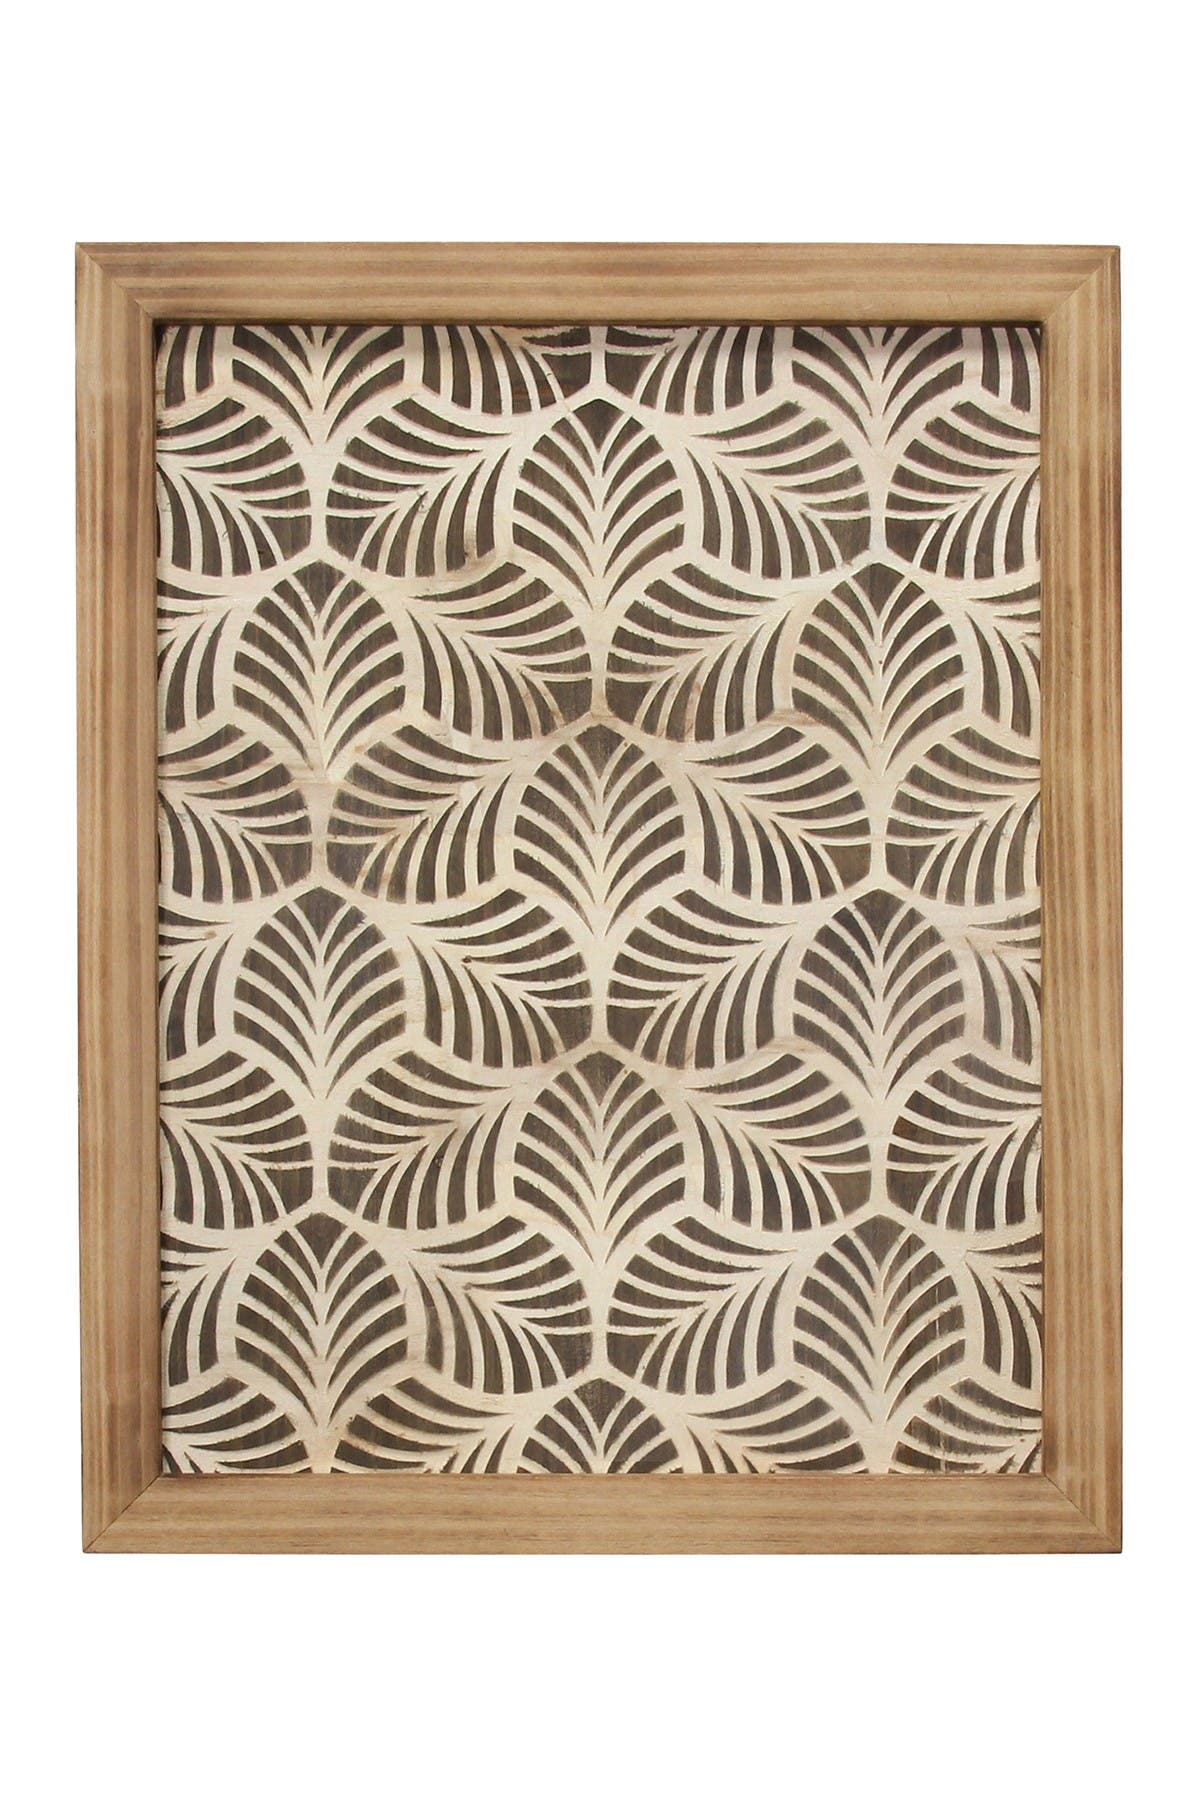 Stratton Home Leaf Patterned Wall Decor Nordstrom Rack